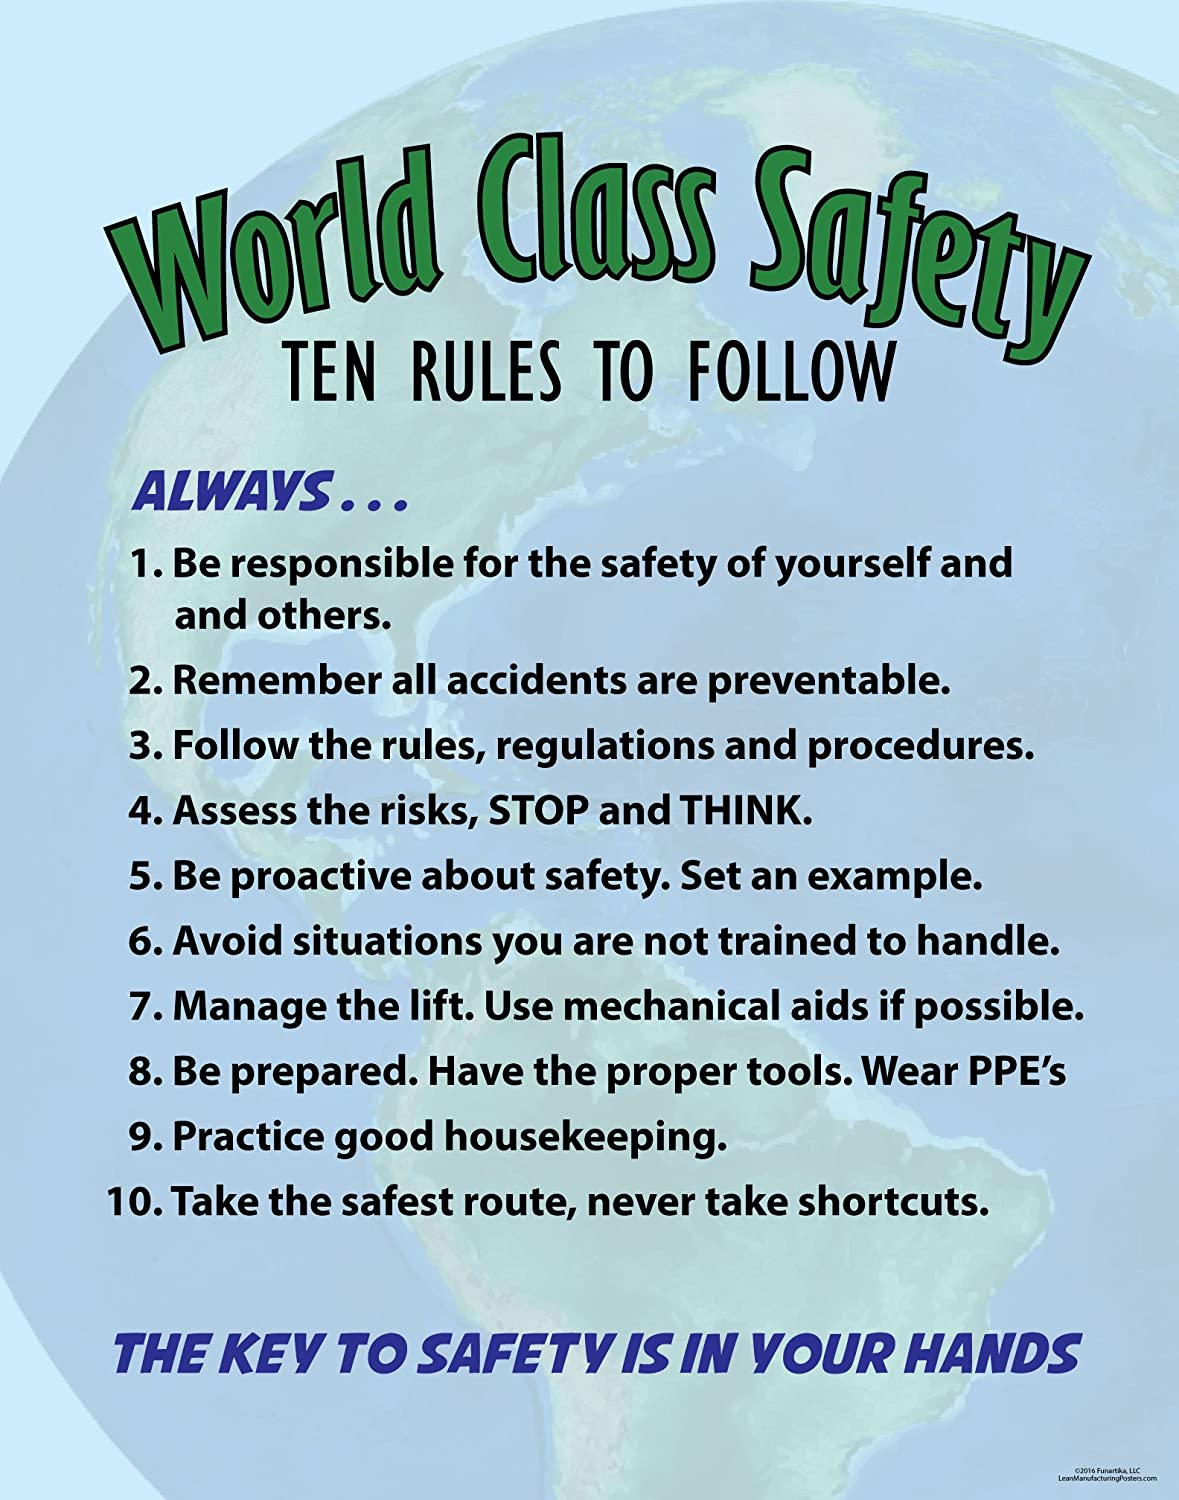 Amazon.com : World Class Safety, Ten Rules : Office Products